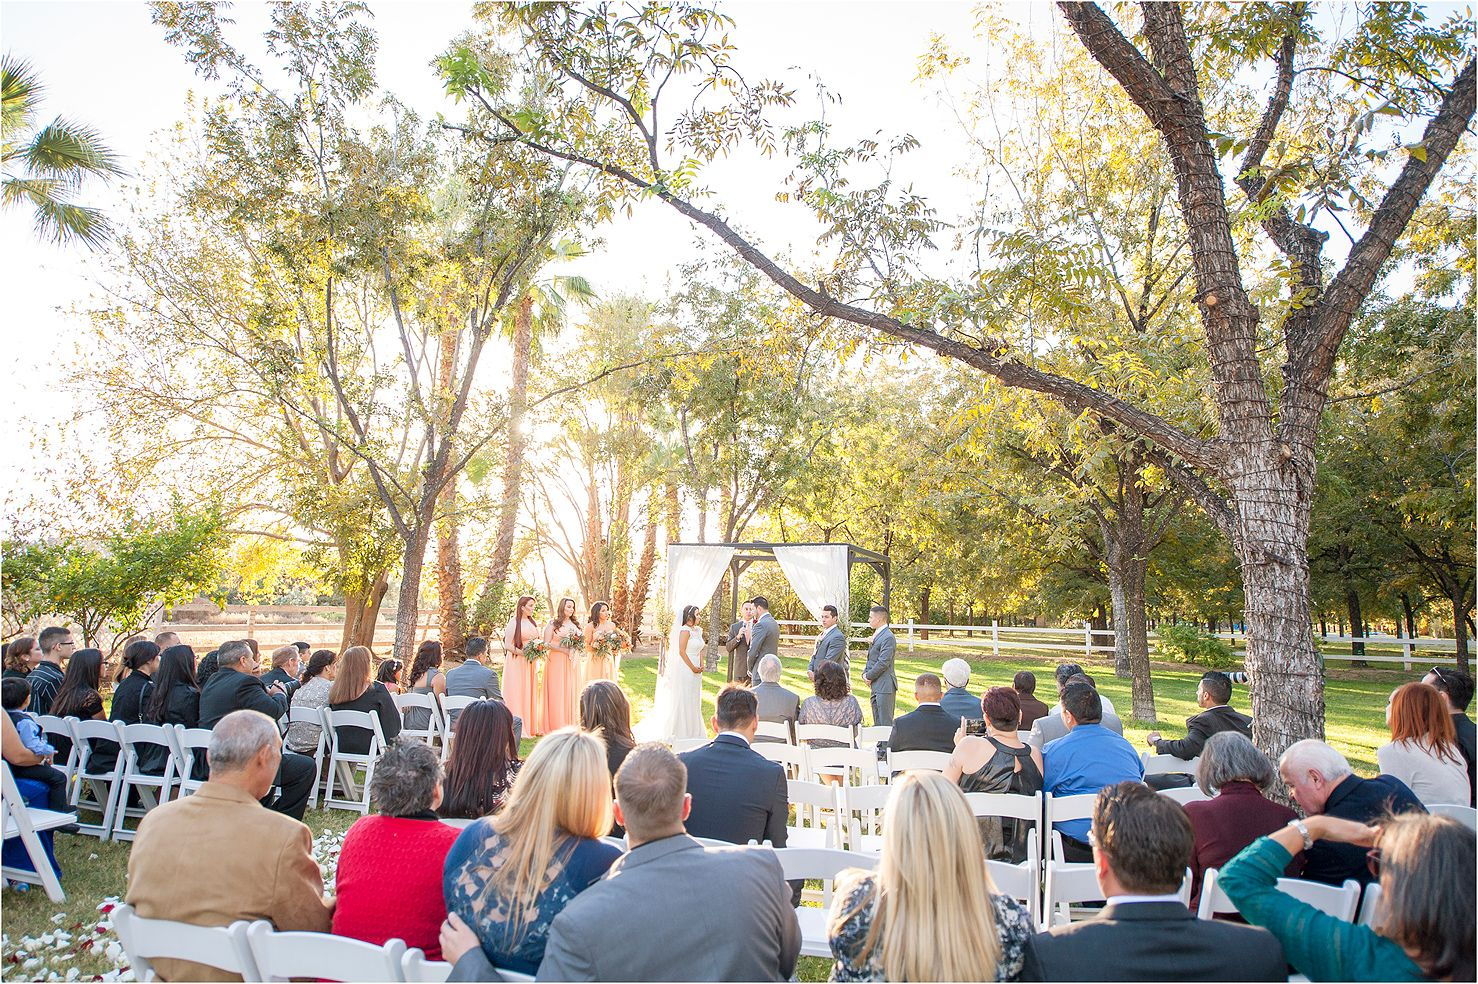 A Wedding Ceremony In Pecan Tree Grove From Rustic At Venue The